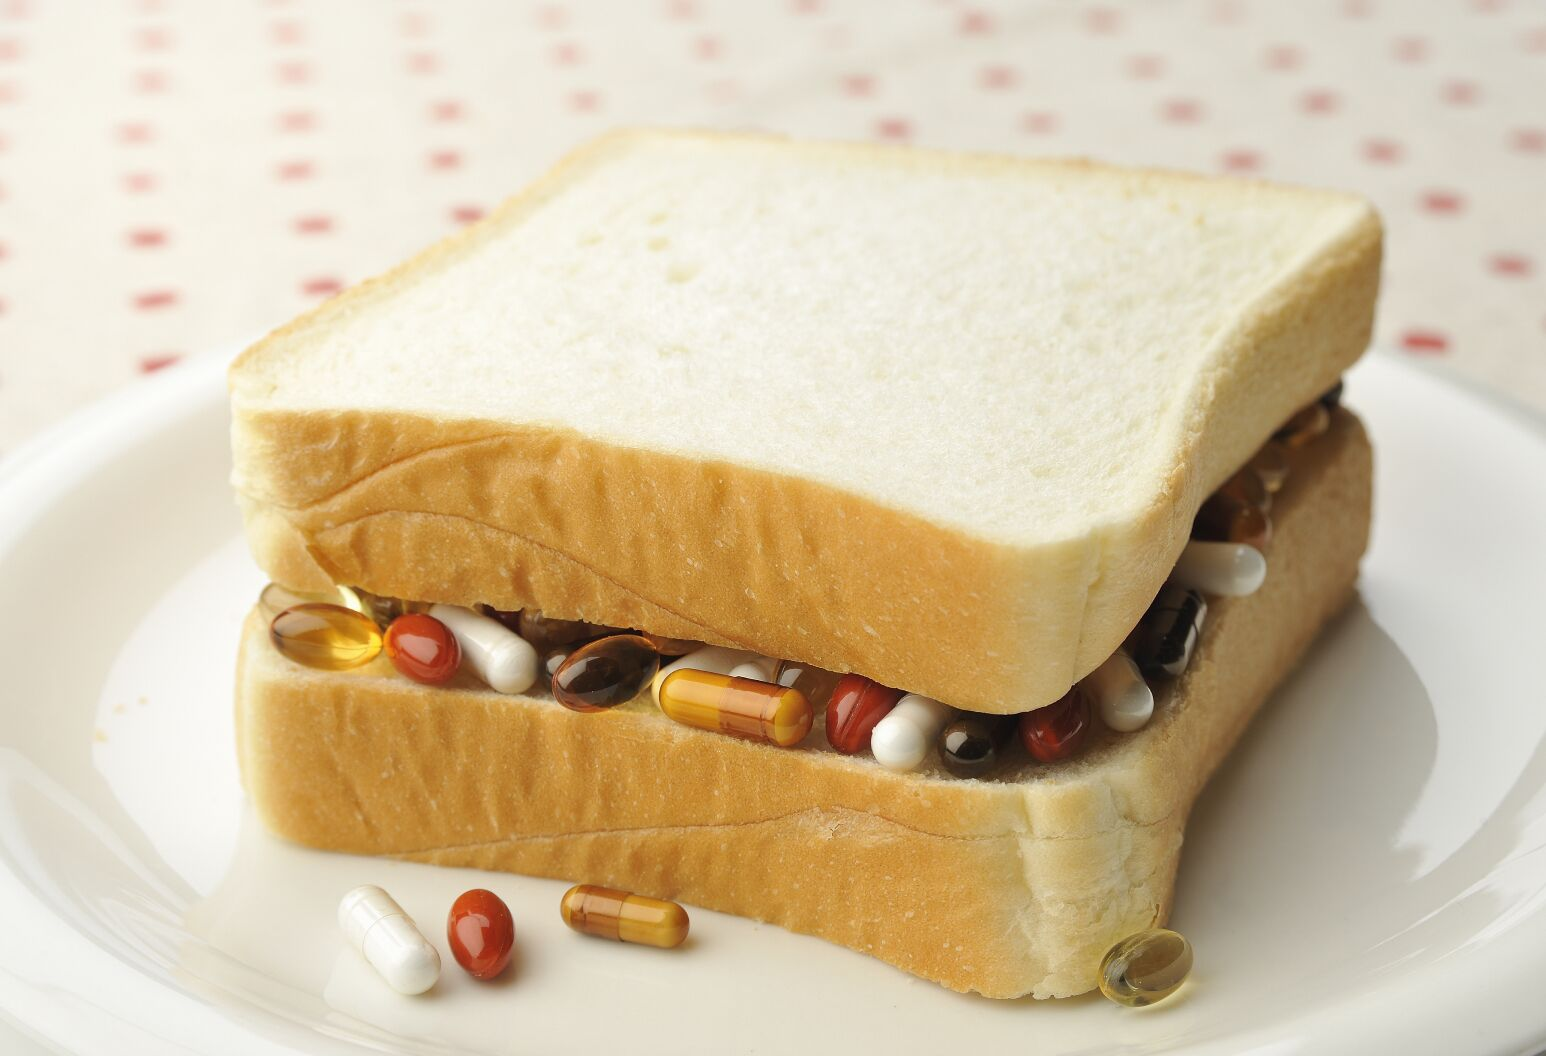 Supplements sandwiched between two slices of white bread.